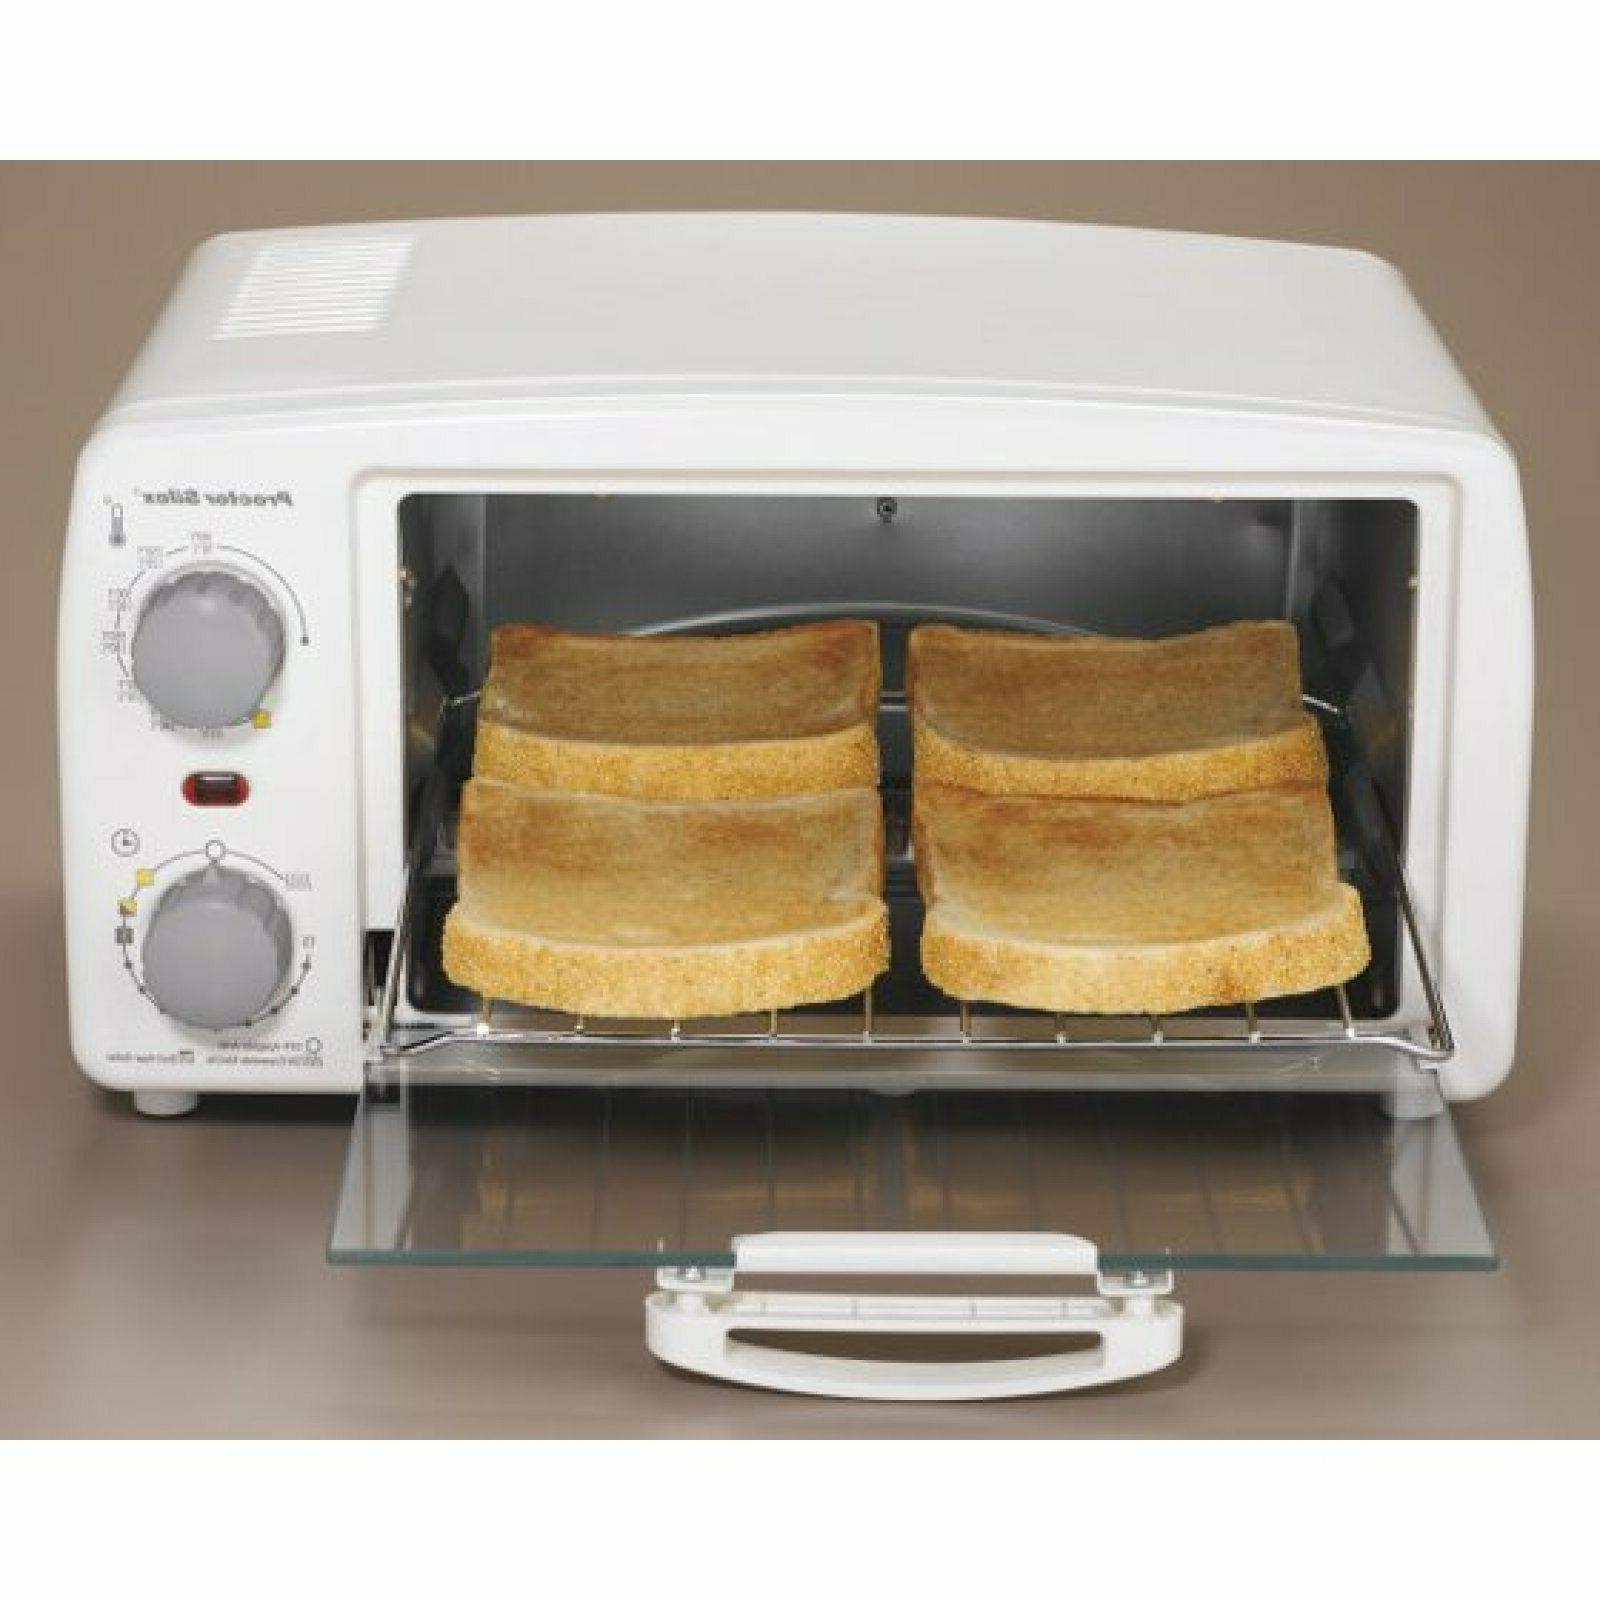 Proctor Silex Toaster Oven And Broiler Mode # 31116R White Extra-Large